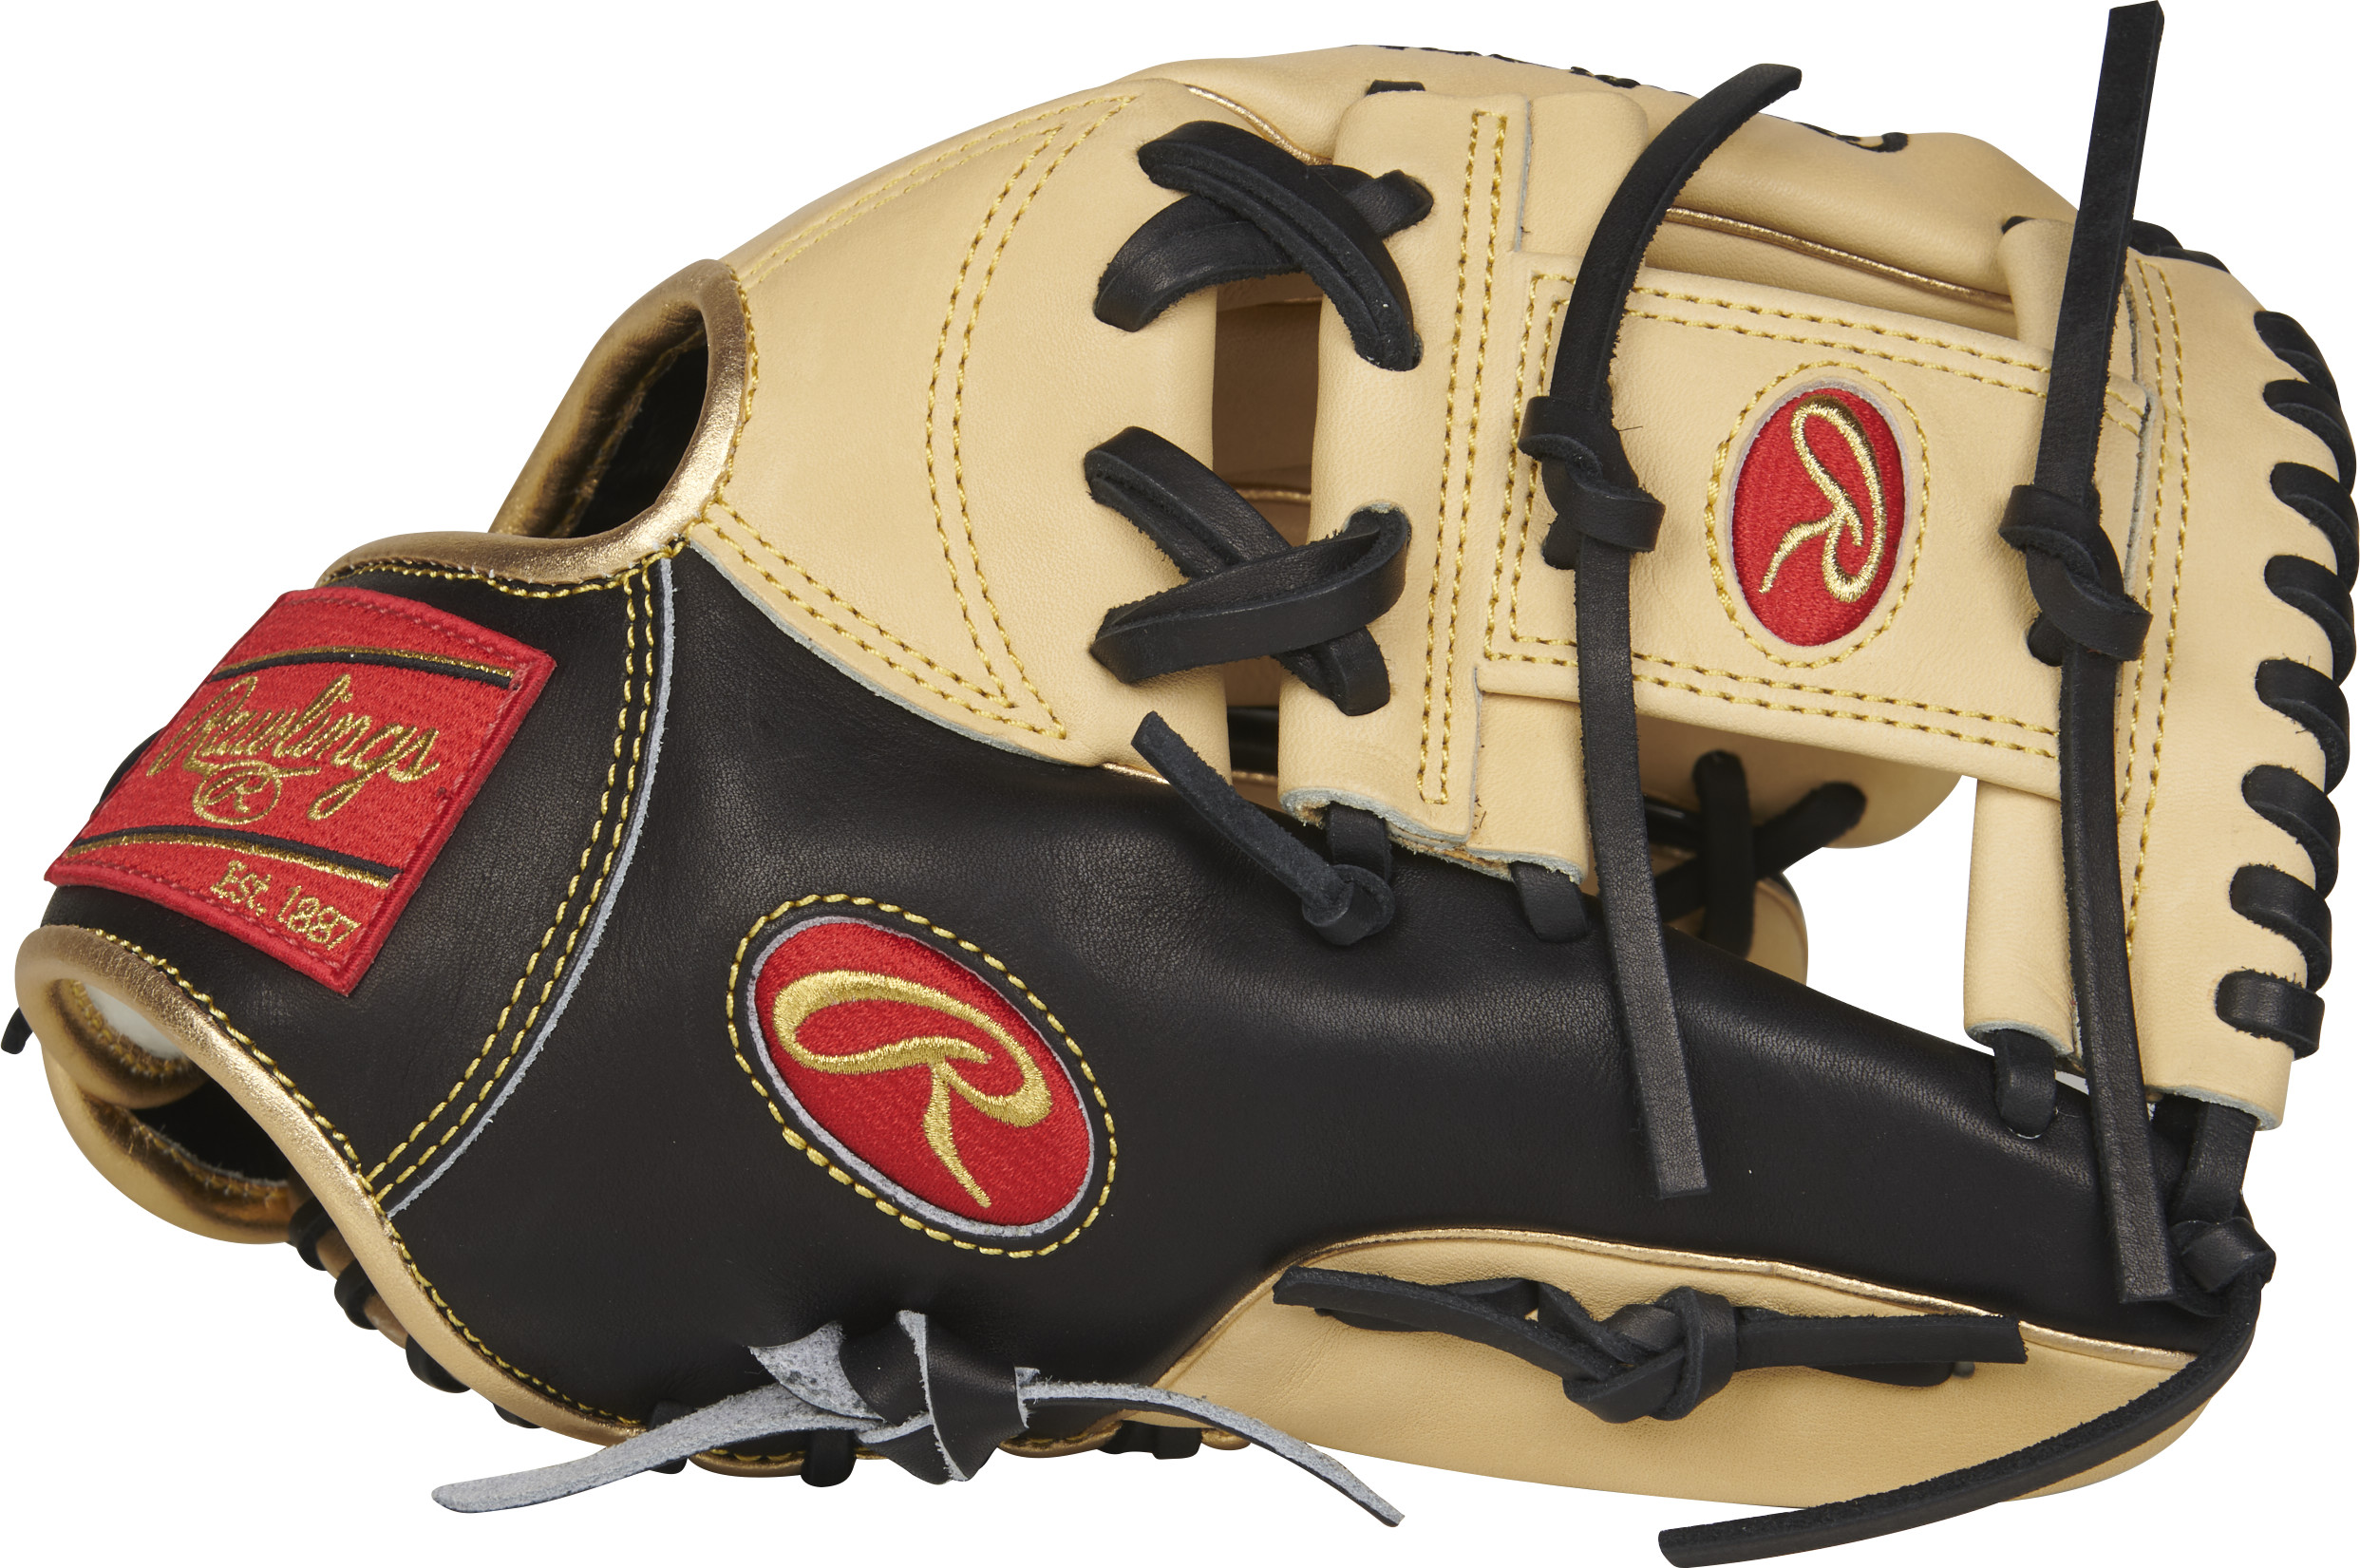 http://www.bestbatdeals.com/images/gloves/rawlings/PROSNP5-2CBG-3.jpg